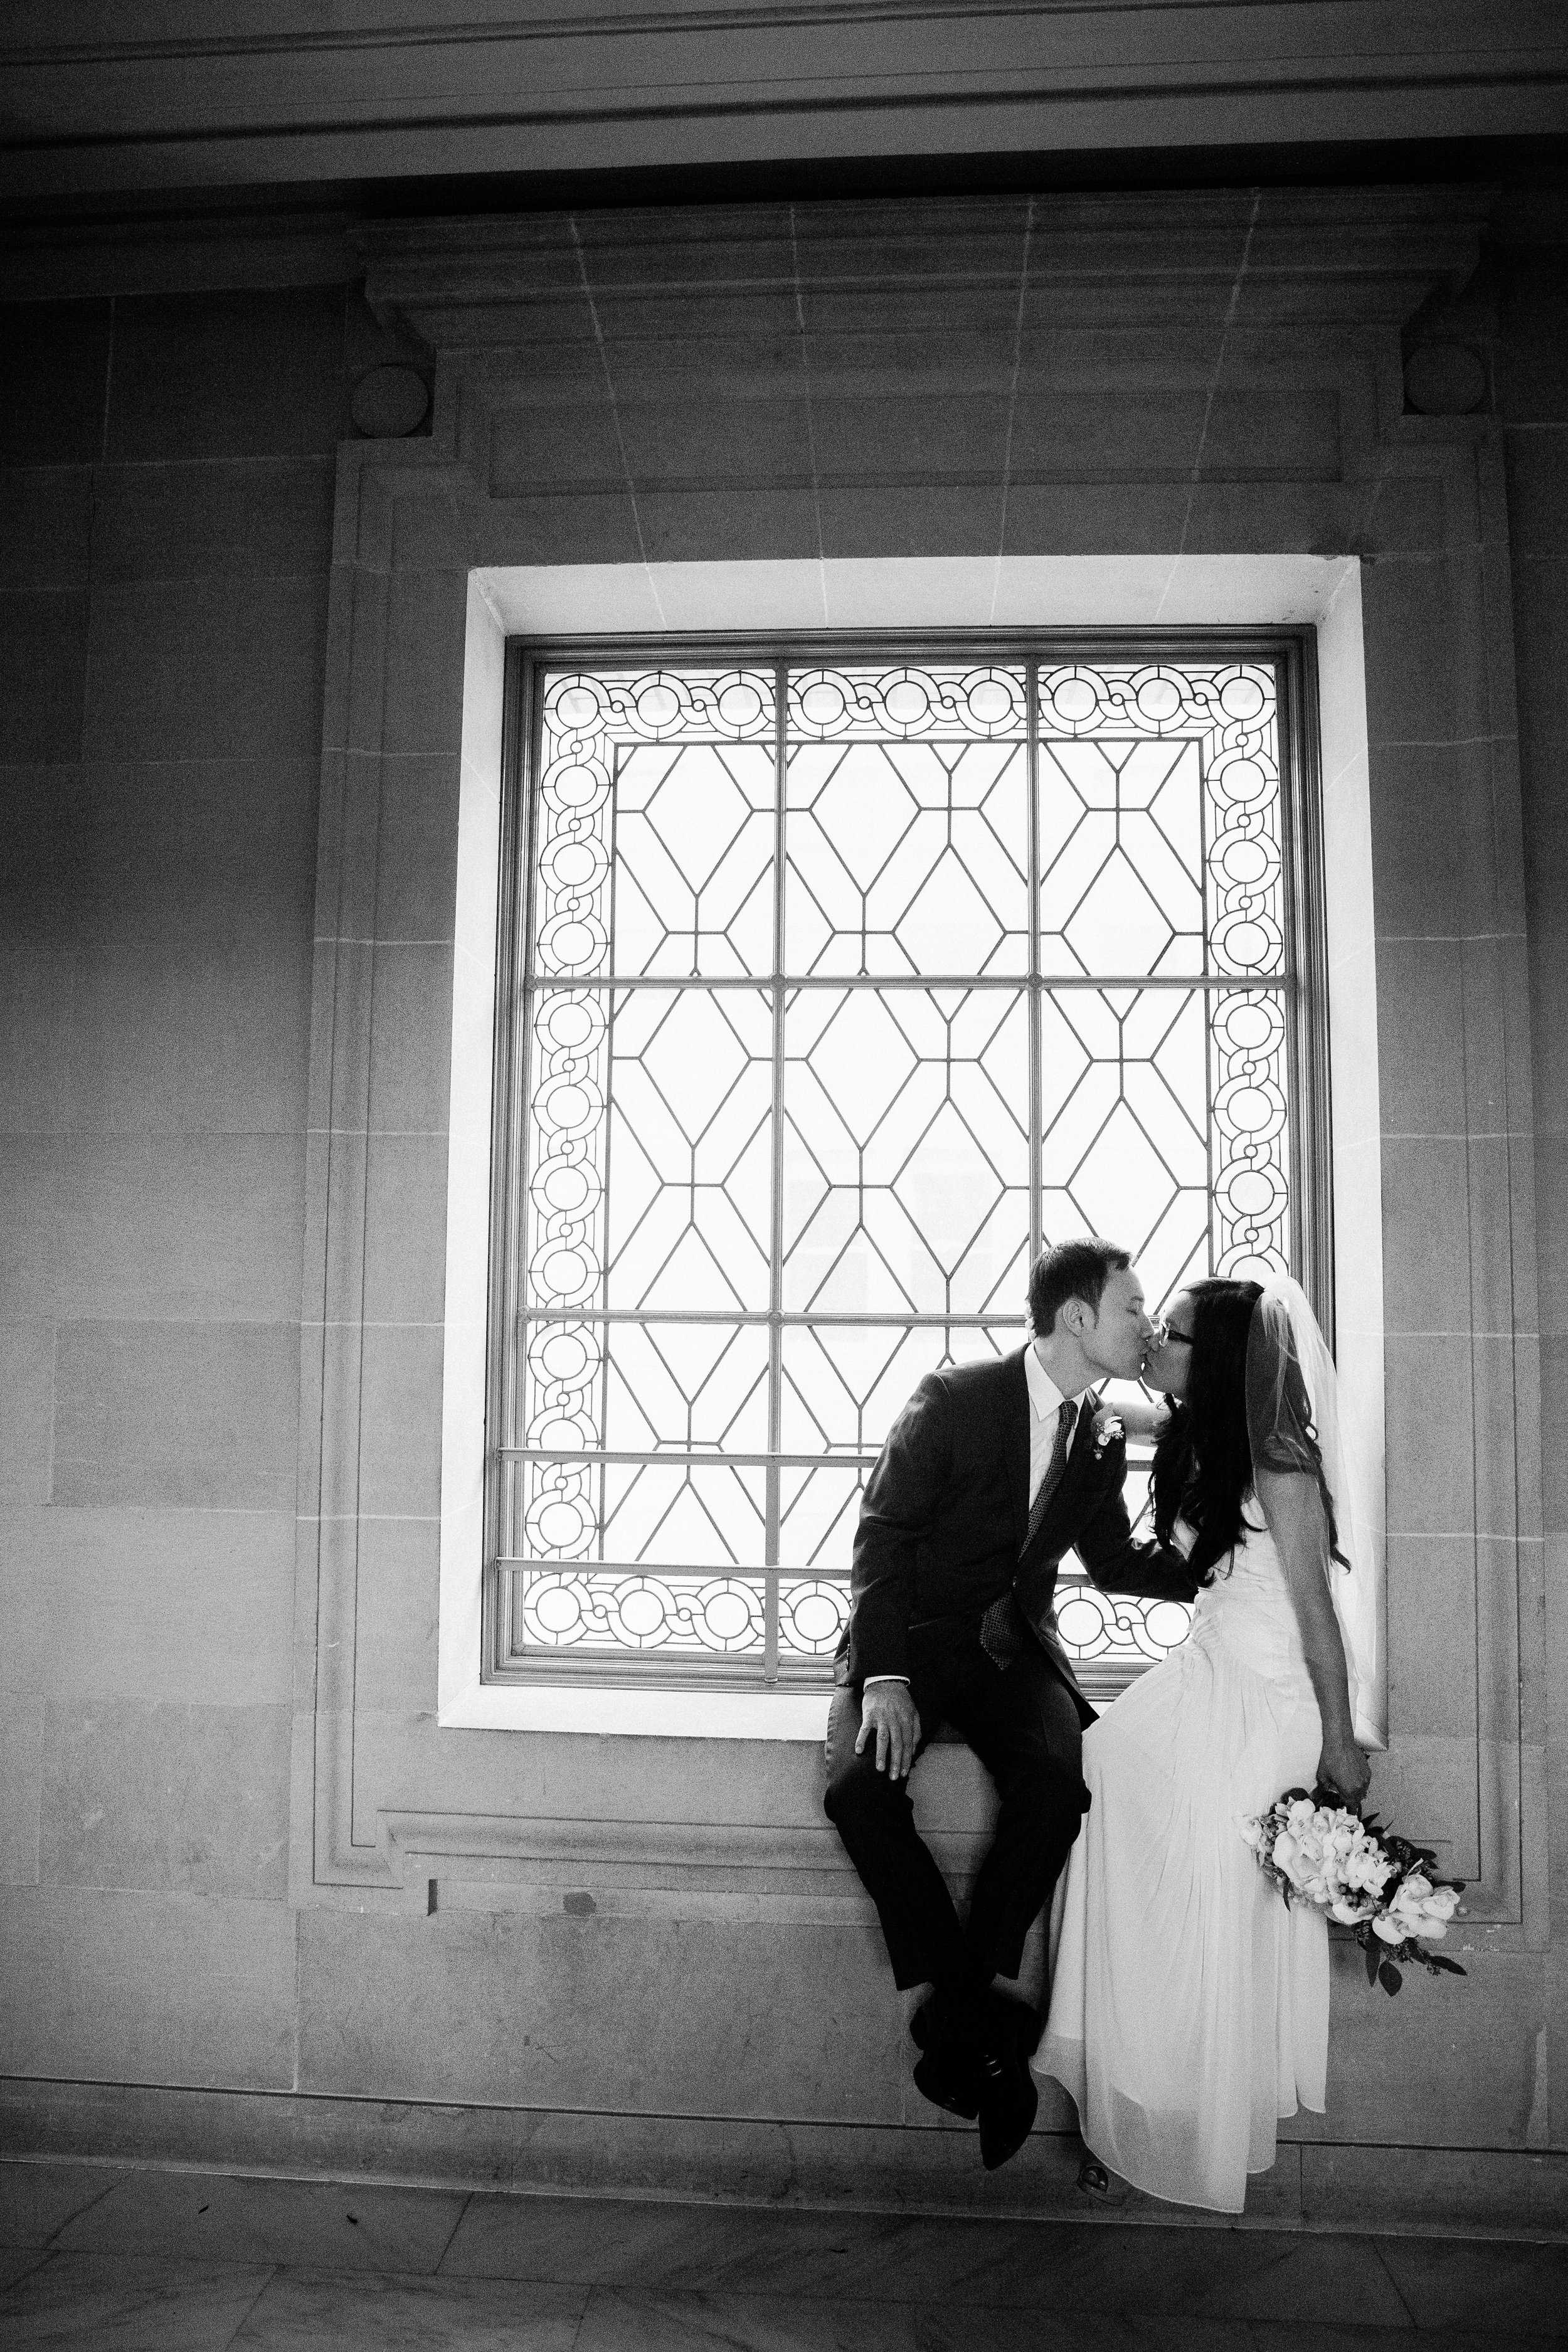 001_janaeshieldsphotography_sanfrancisco_cityhall_weddings.jpg